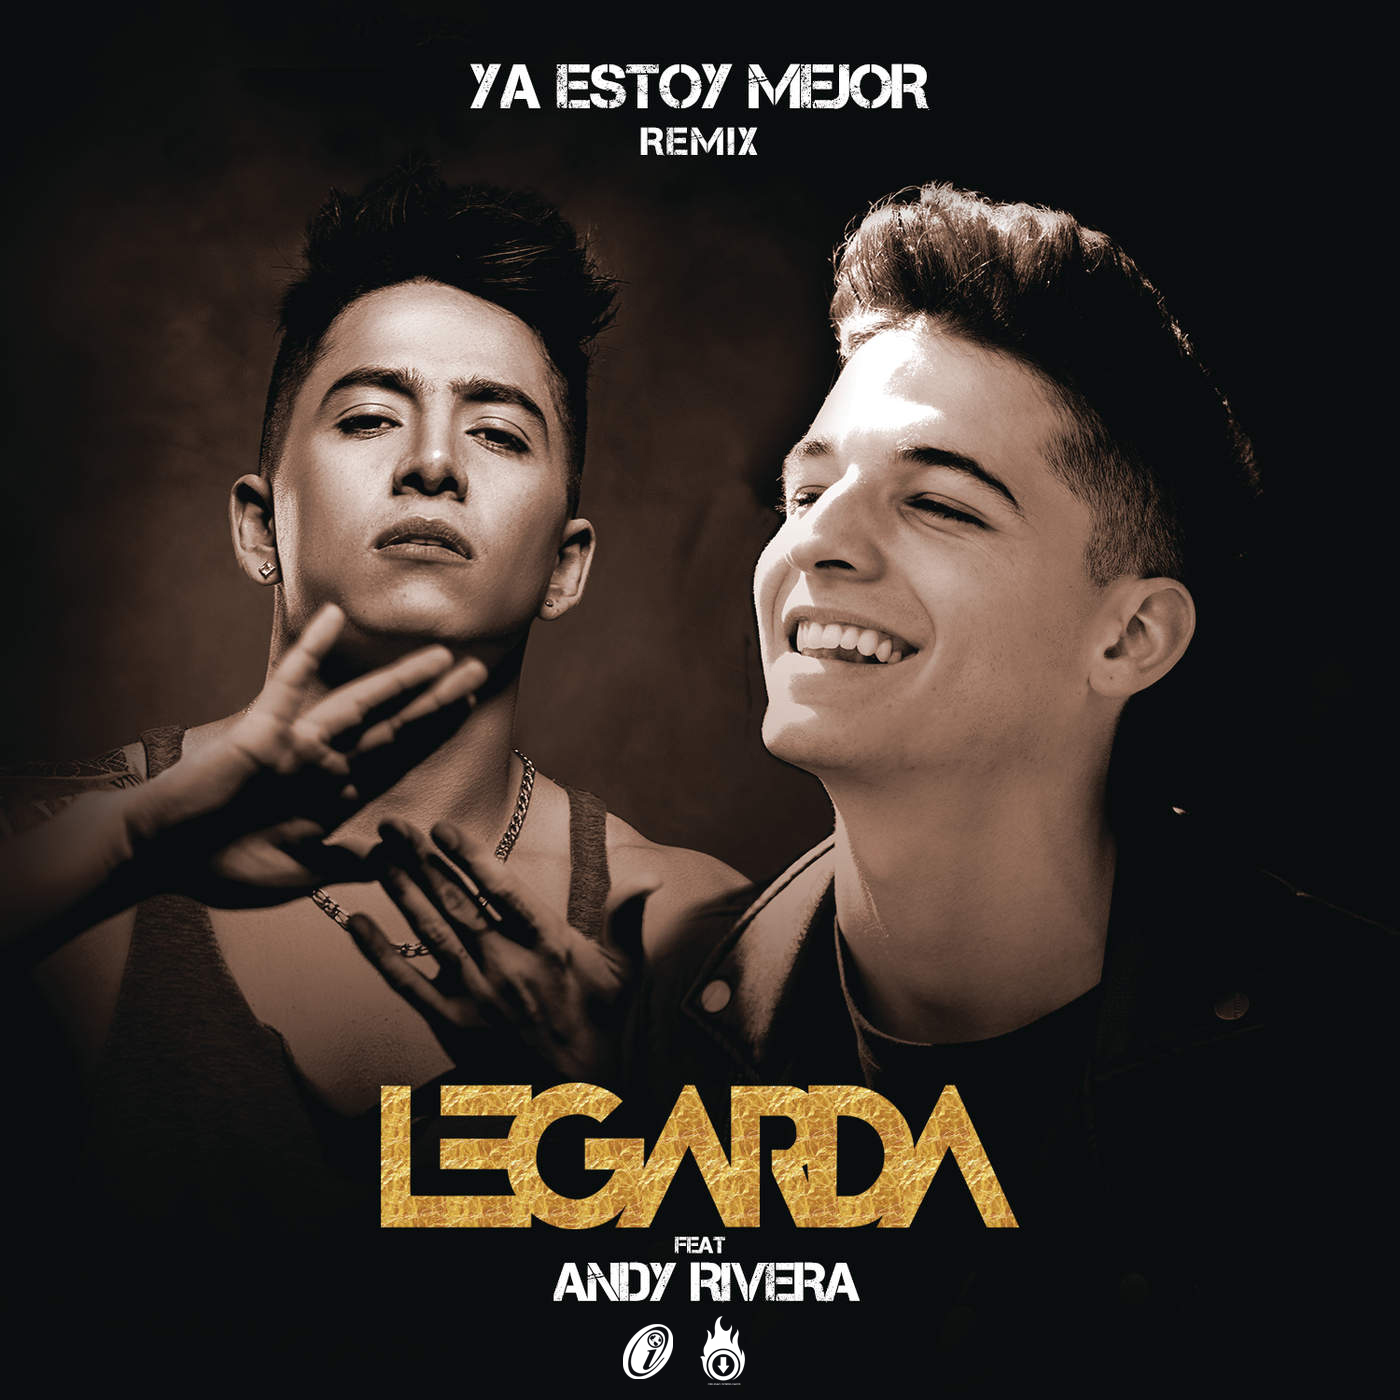 Legarda Ft Andy Rivera - Ya Estoy Mejor (Official Remix)